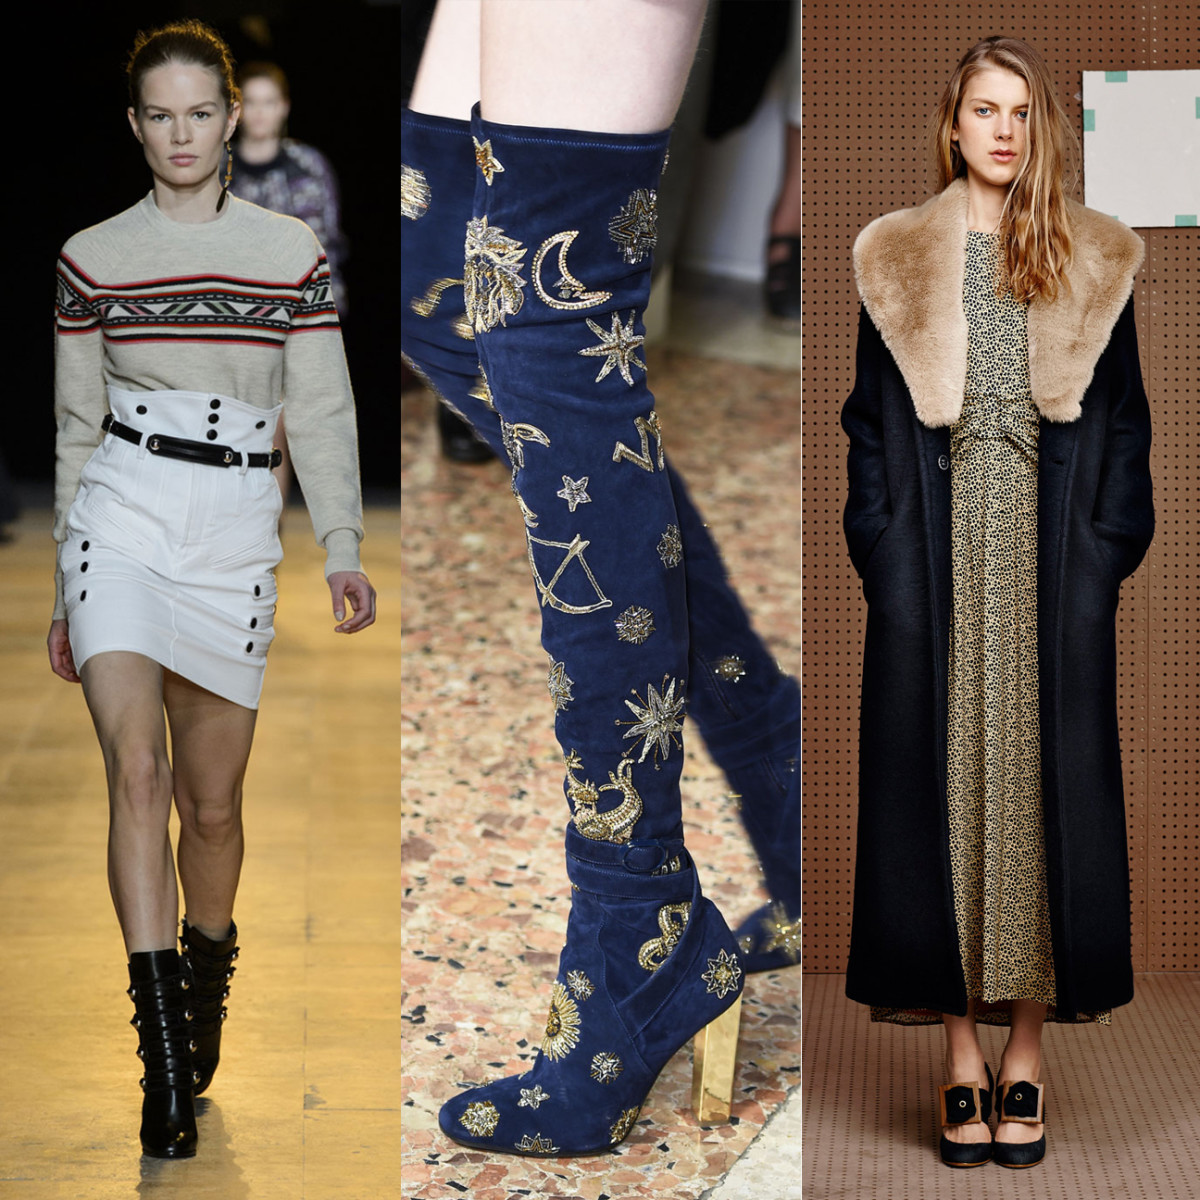 Isabel Marant, Pucci and Band of Outsiders. Photos: Imaxtree and Band of Outsiders